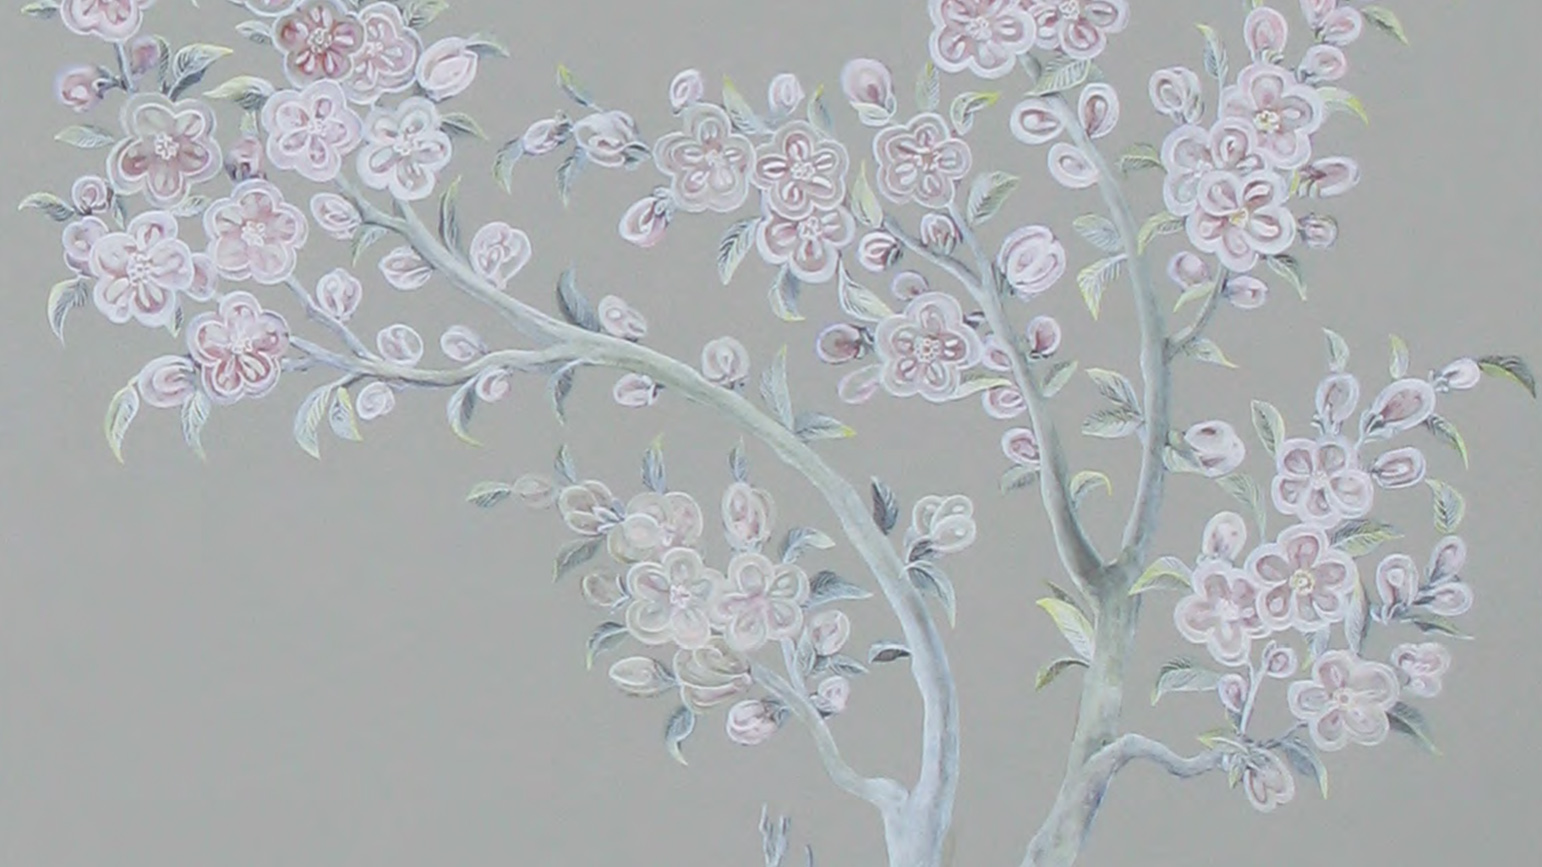 Painting of flowers against a gray background